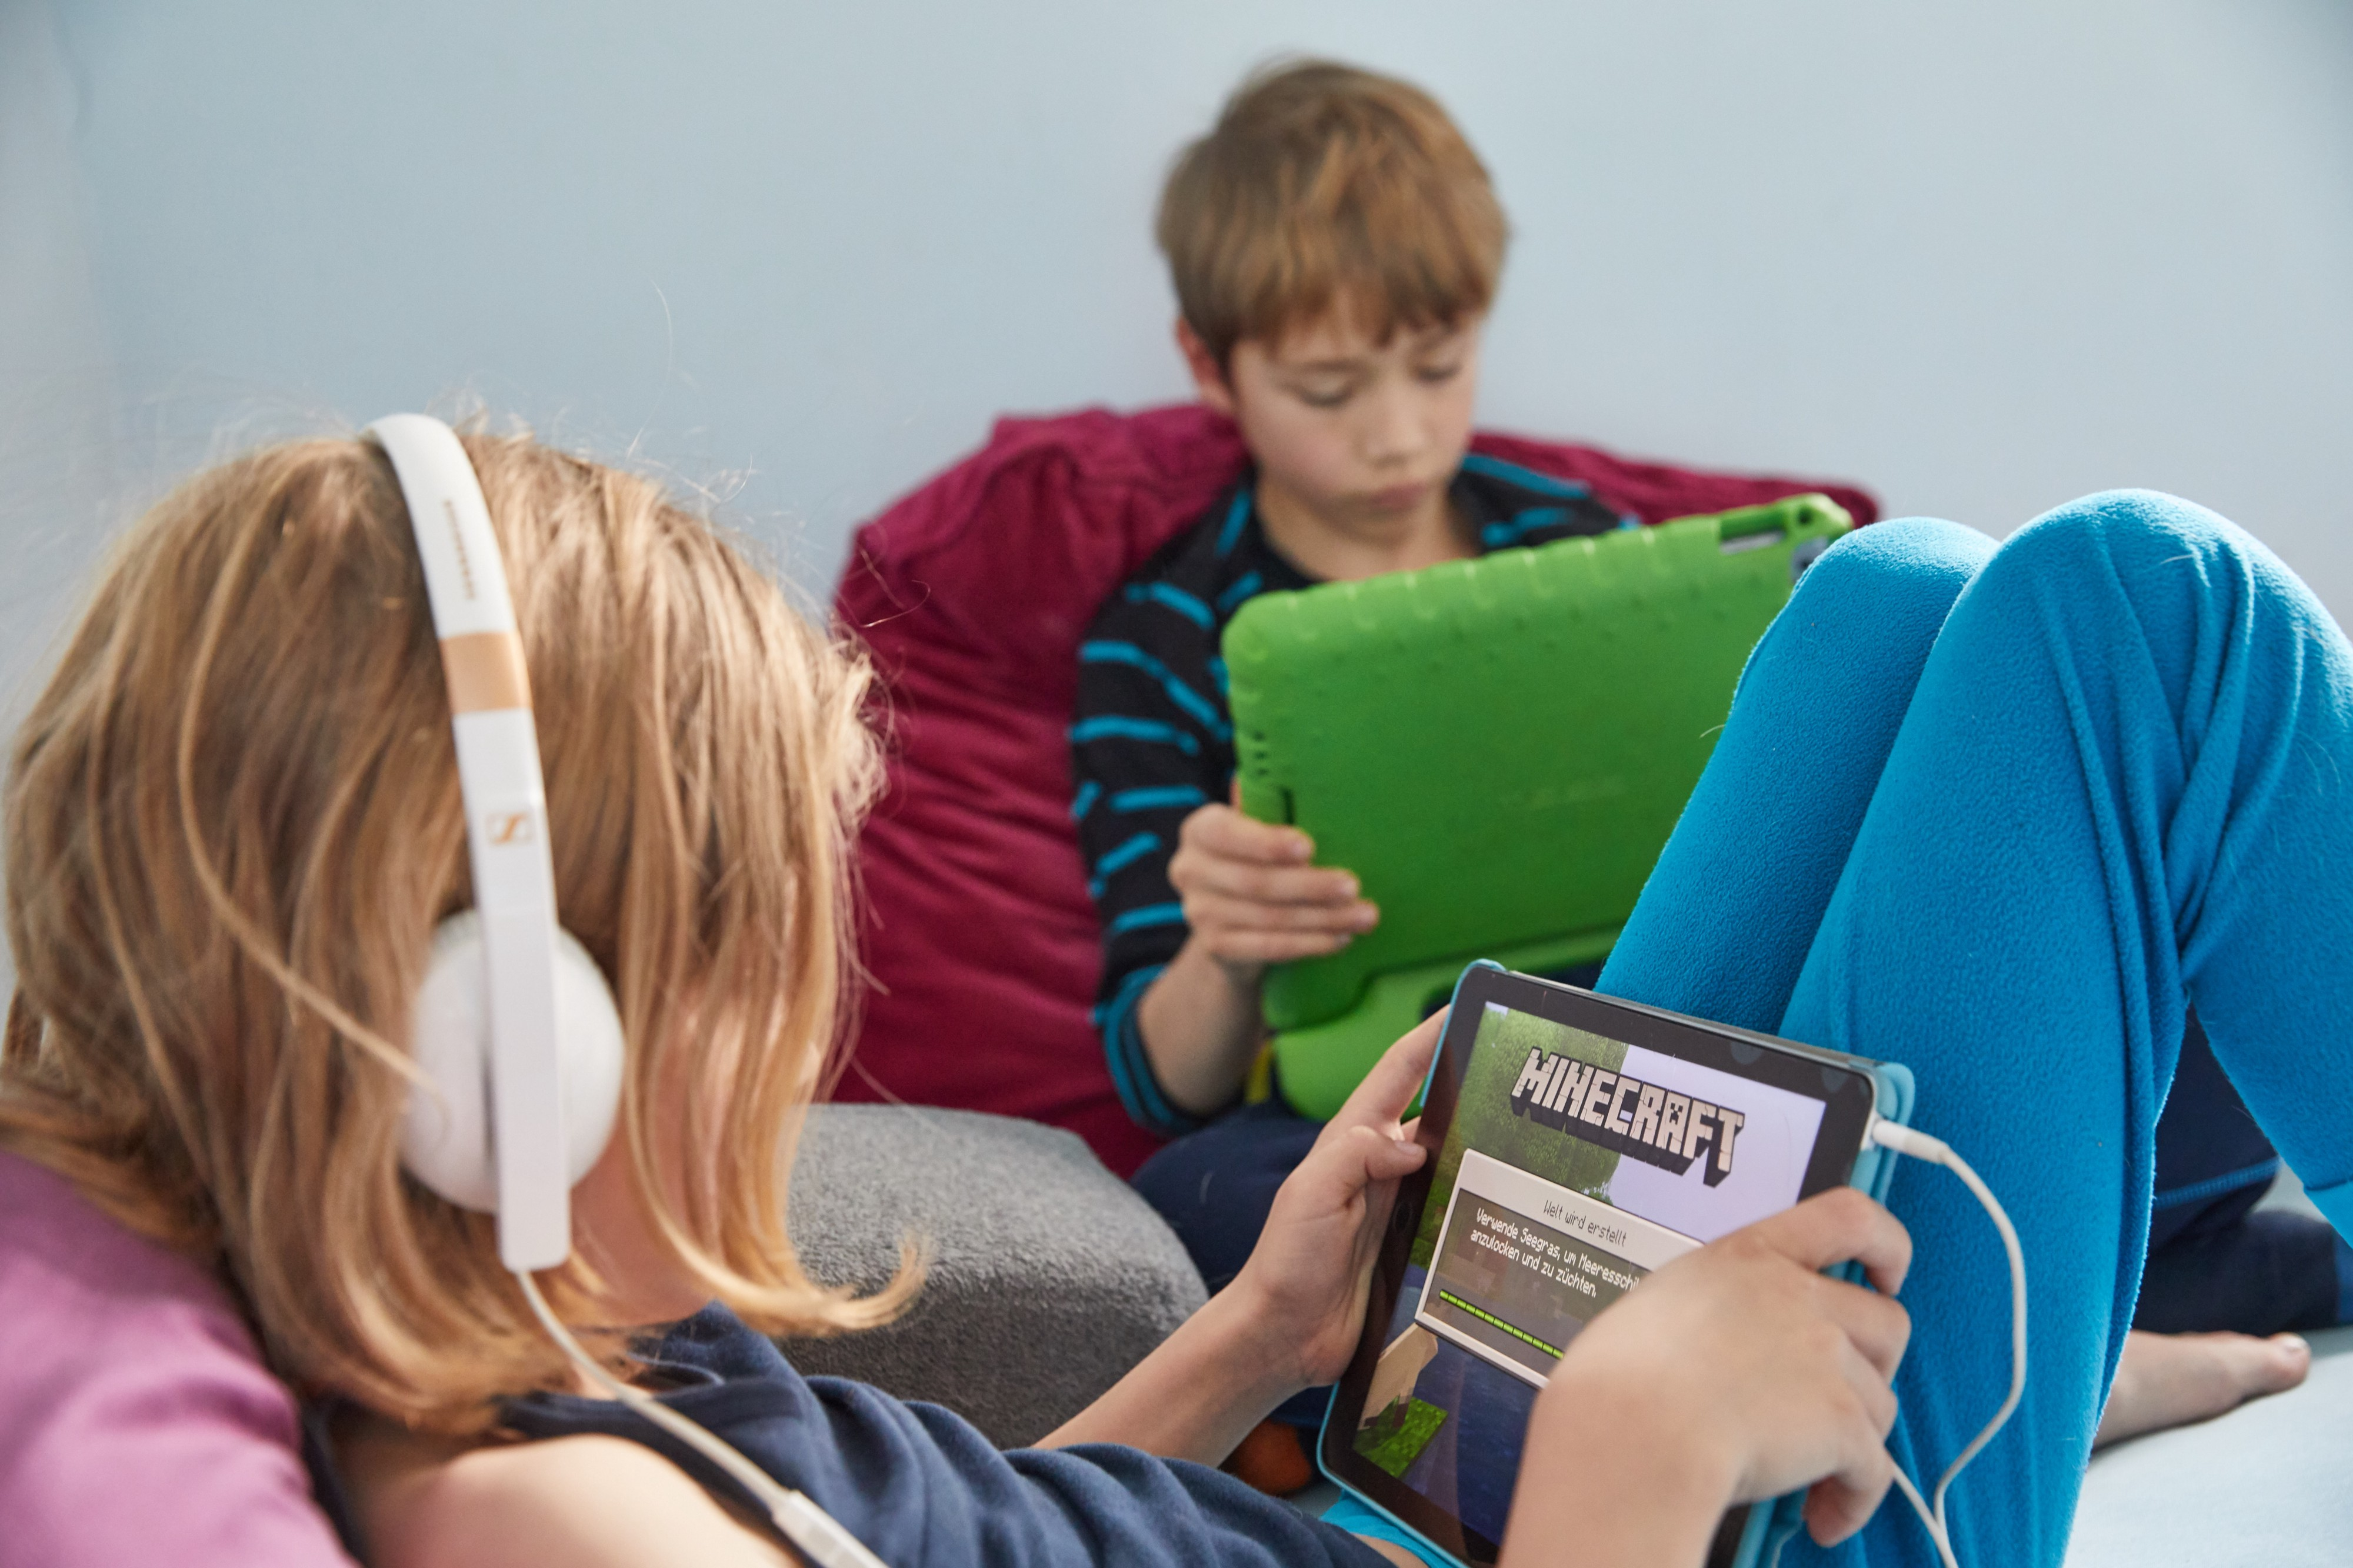 Two young children play the open world game Minecraft on their iPads.